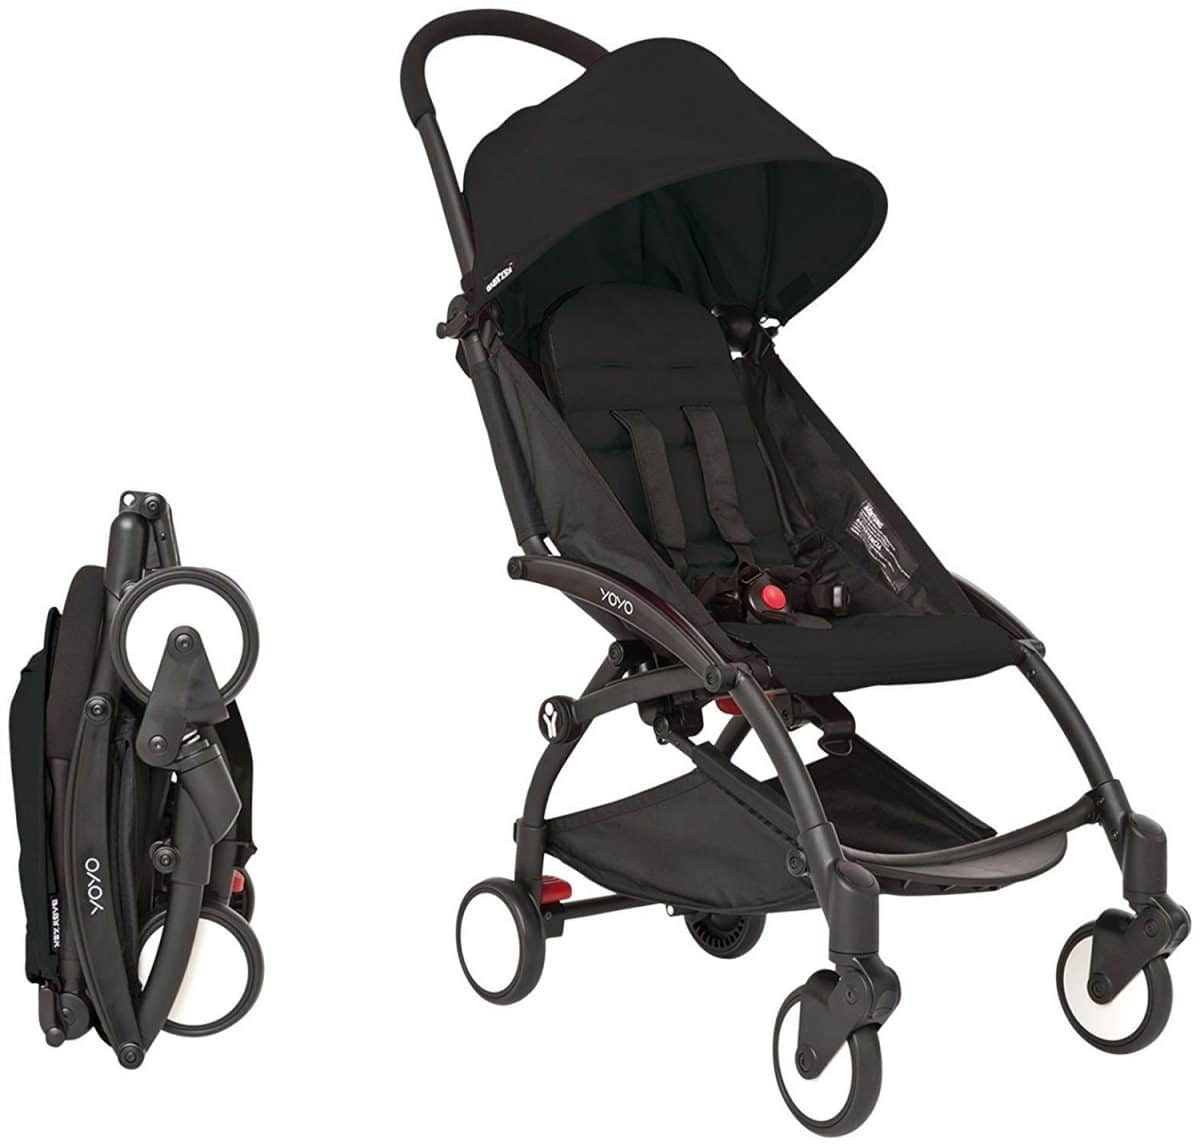 Newborn Stroller Nz The 10 Best Travel Strollers To Buy 2019 Littleonemag